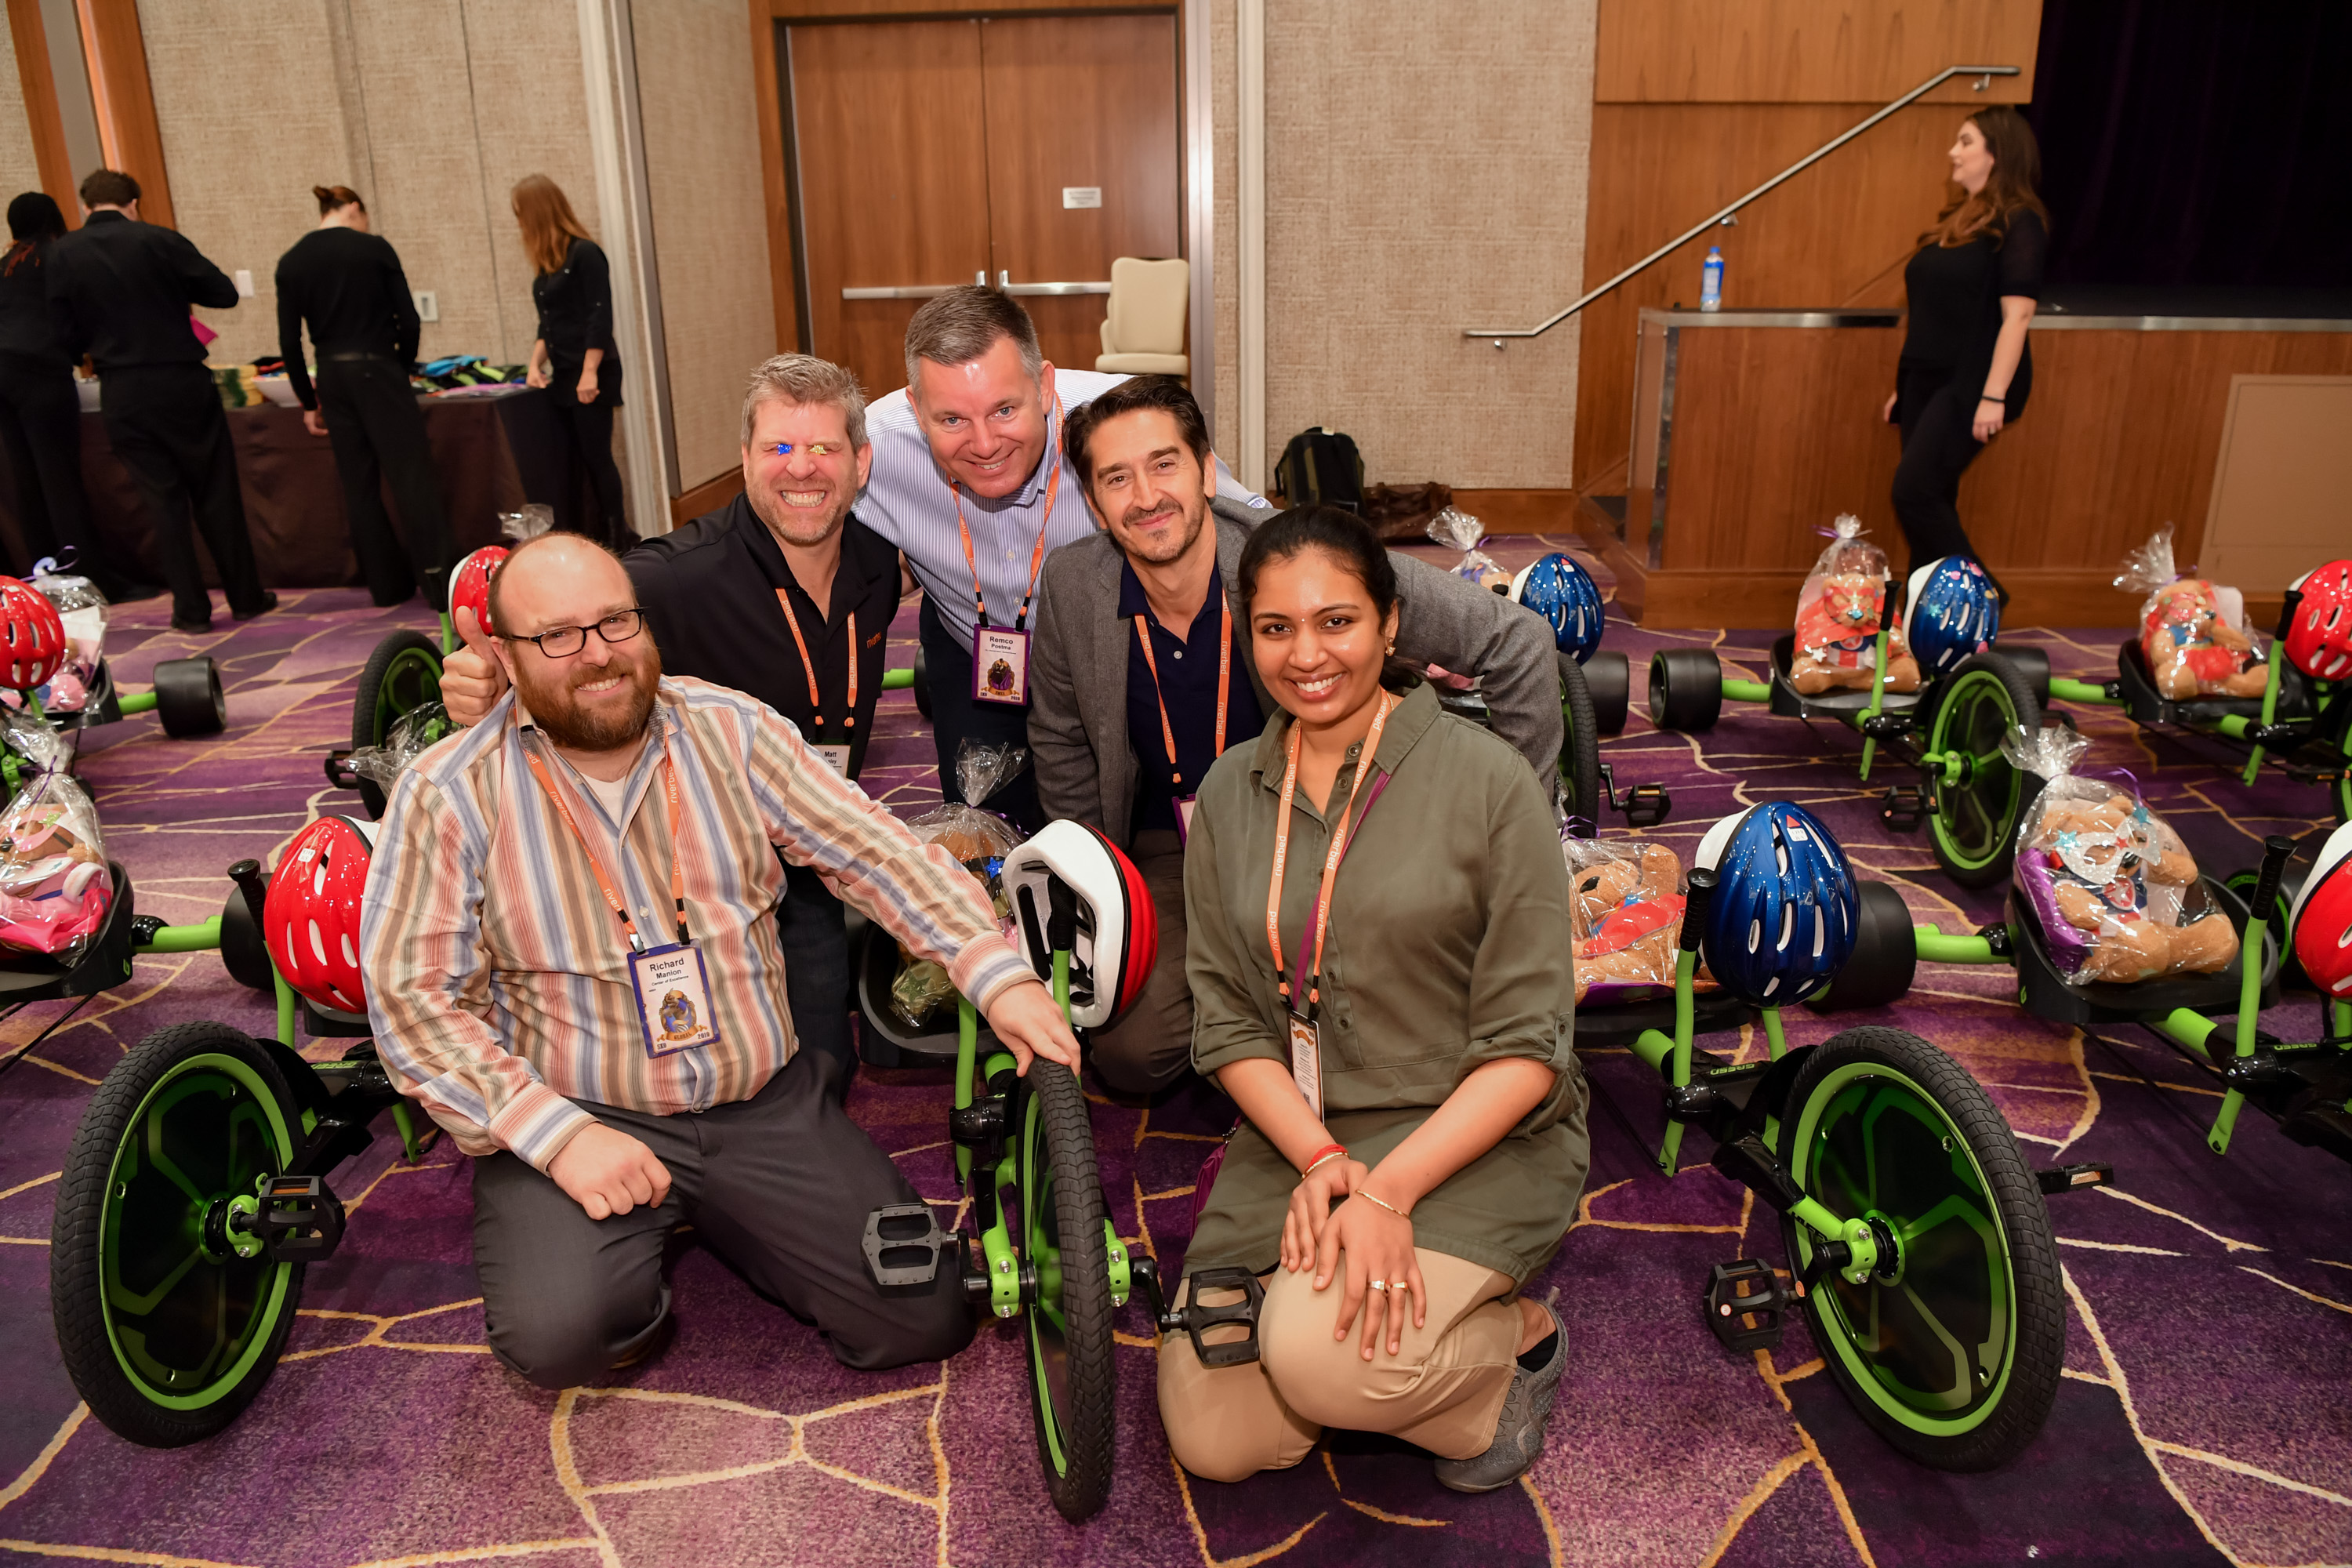 Event attendees built bikes and assembled bears for local community